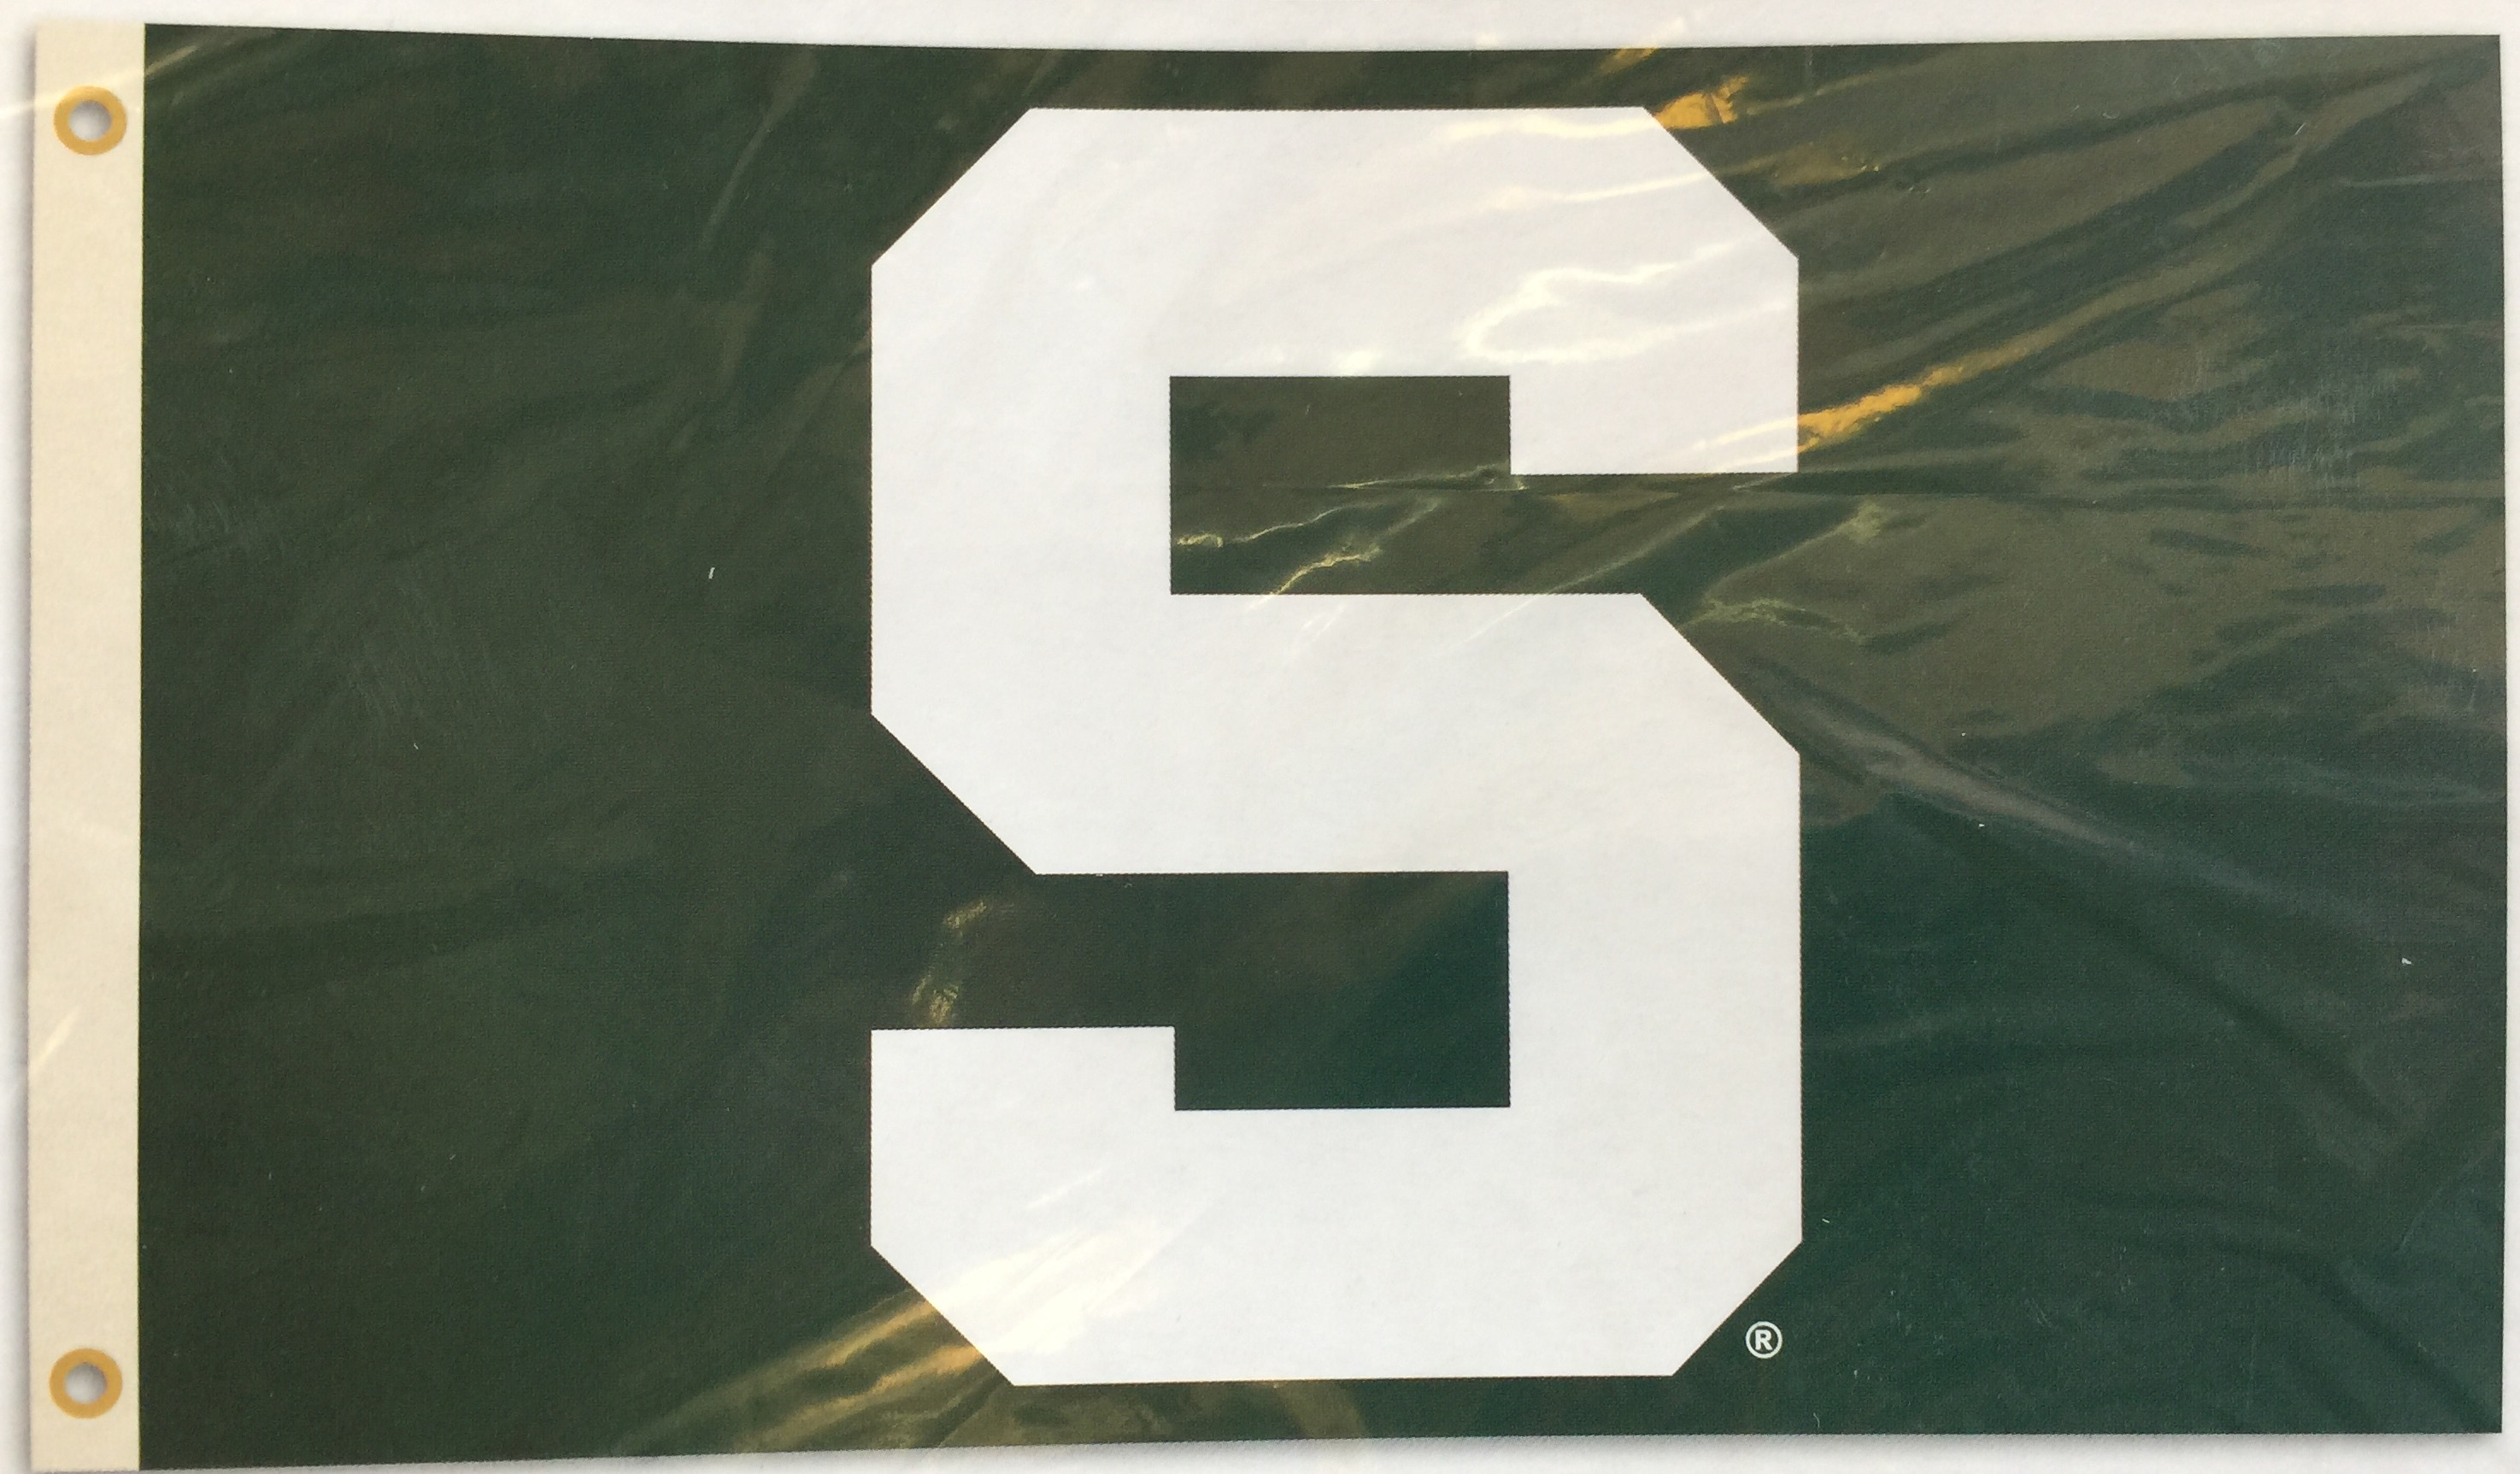 Michigan State University 3'x5' Flag